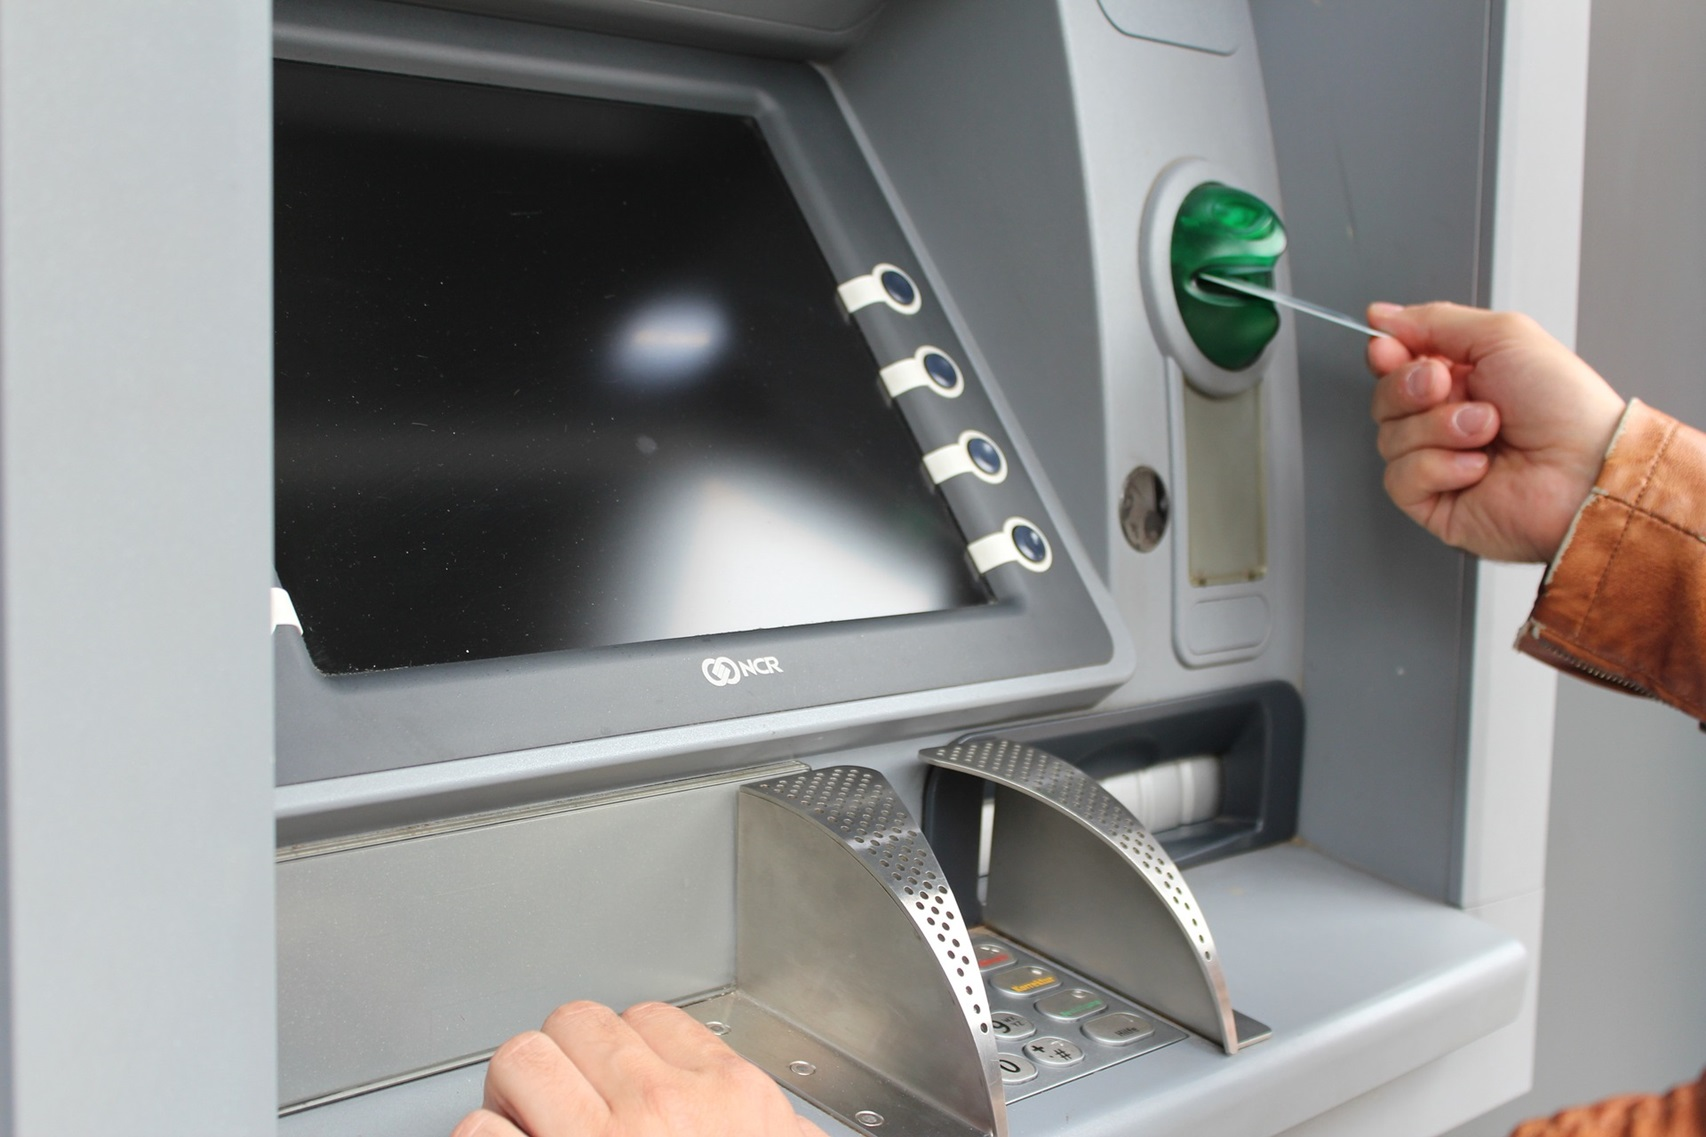 The Union Bank of Philippines Reportedly Launches 2-Way Crypto ATM